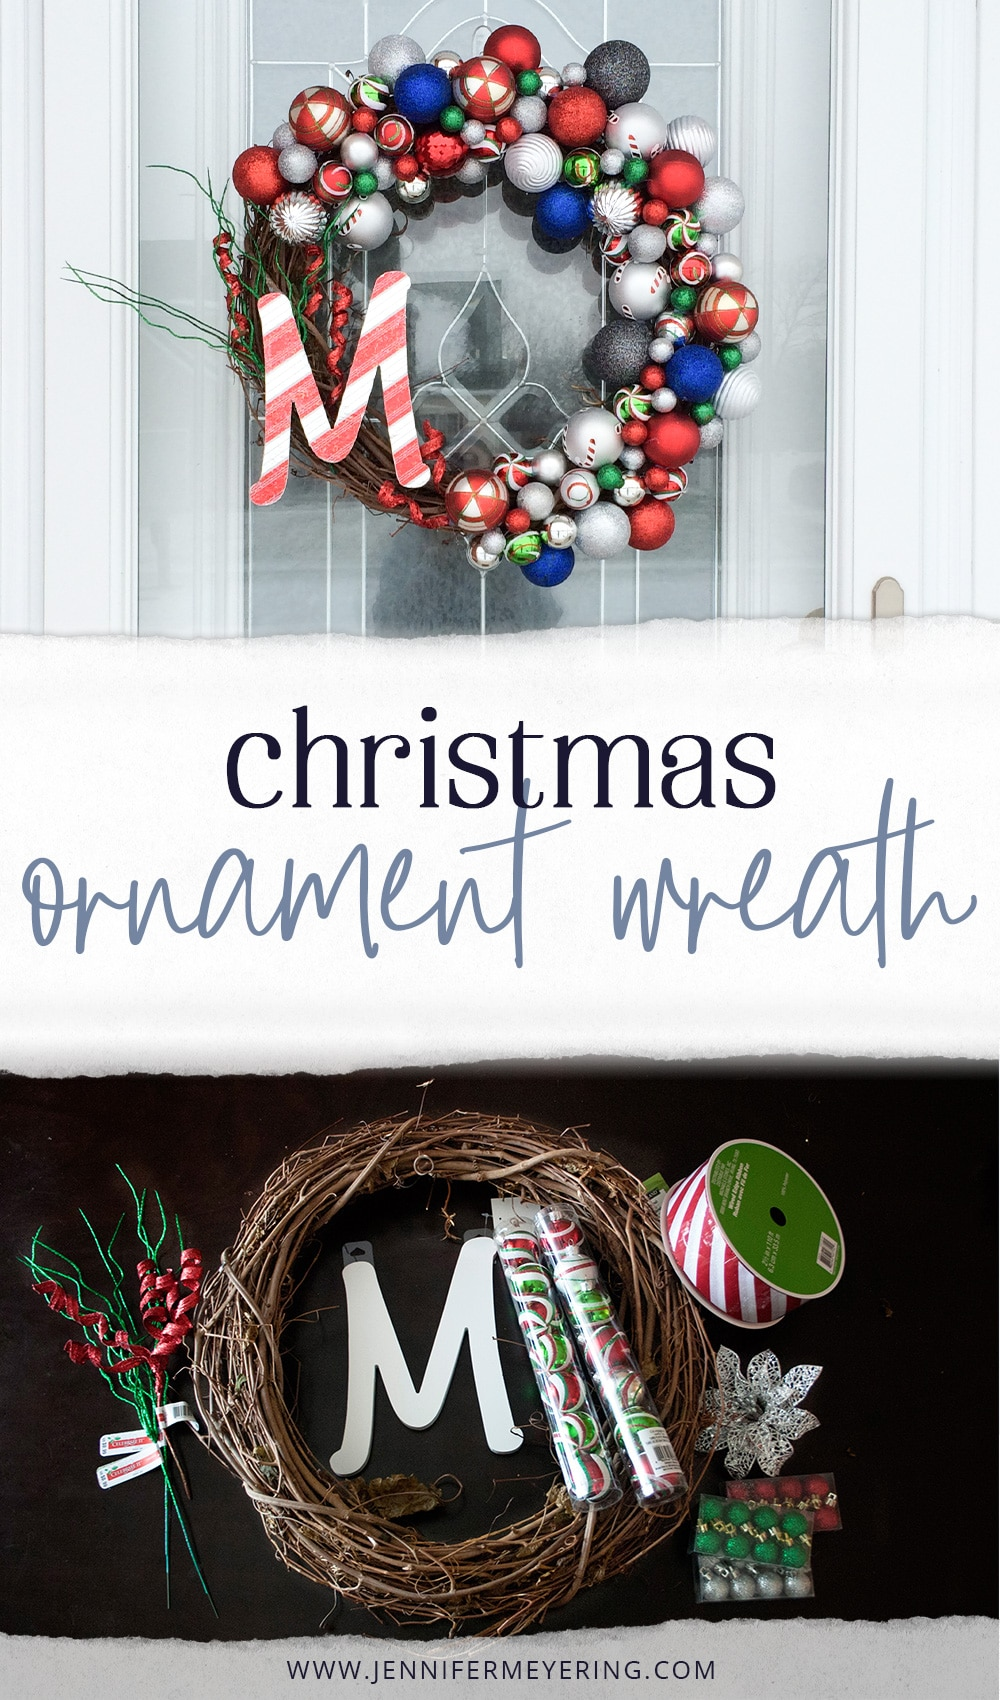 Christmas Ornament Wreath - JenniferMeyering.com